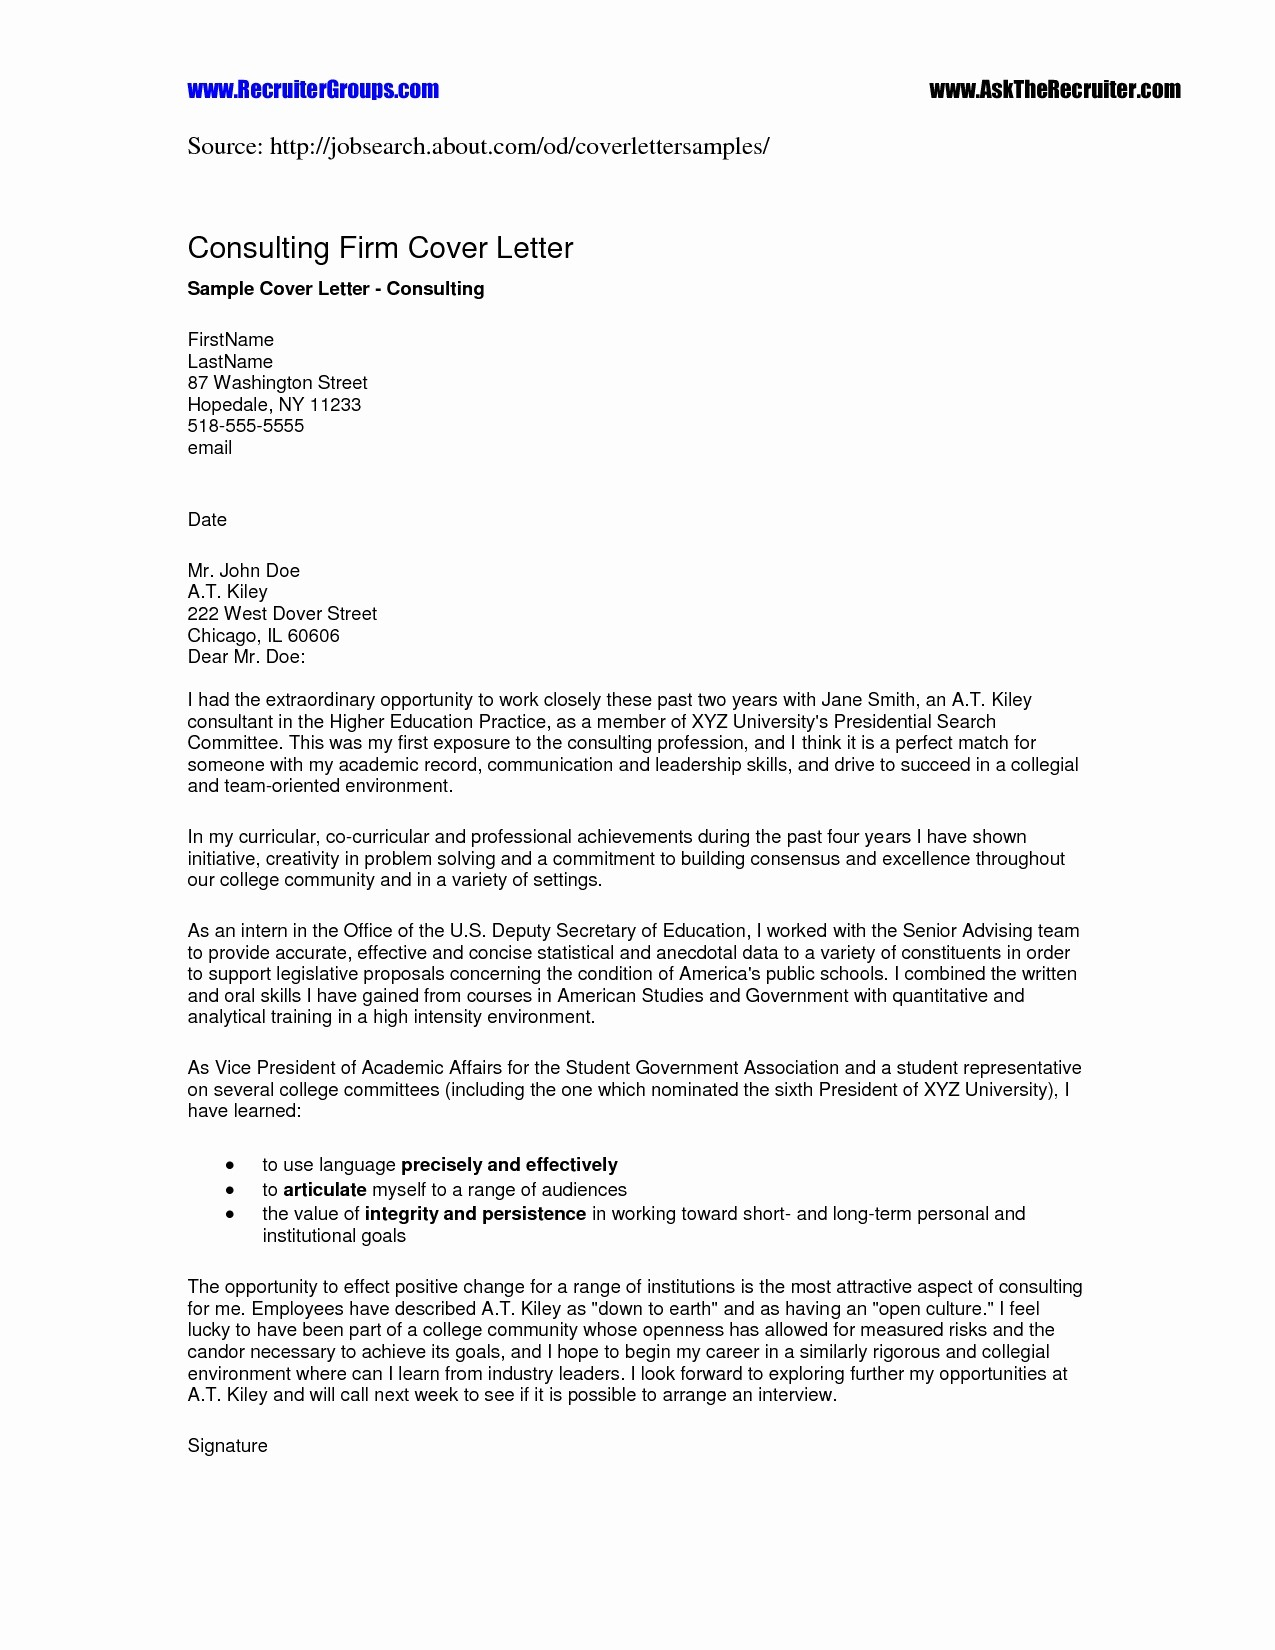 Free Sample Reference Letter Template - Sample Cover Letter for Good Conduct Certificate Fresh Reference